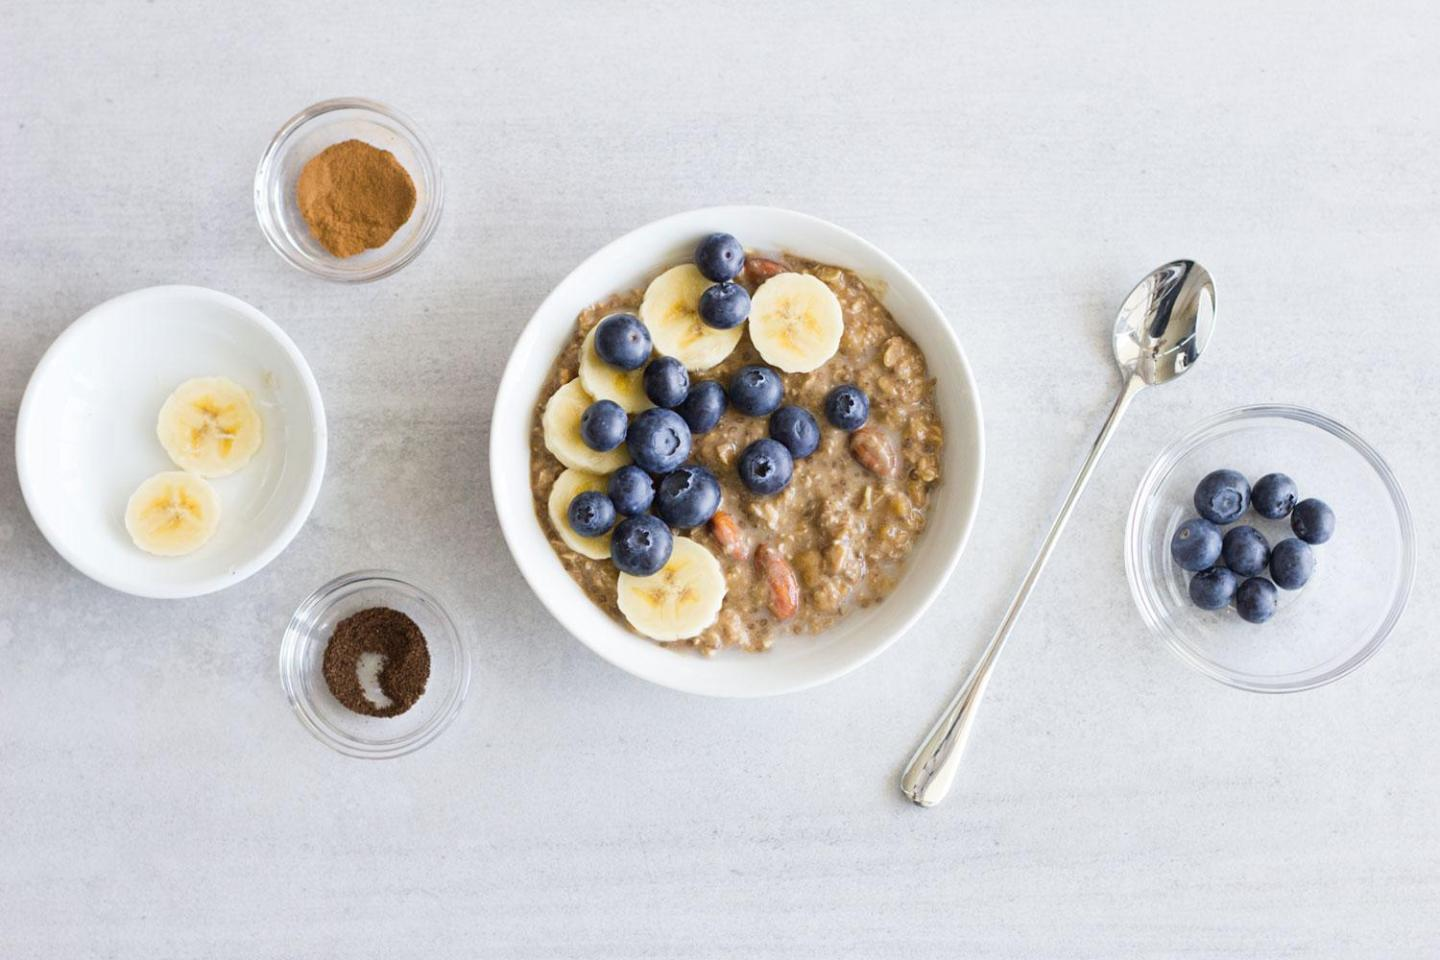 7 Sugar Free Overnight Oats Recipes + All Questions Answered